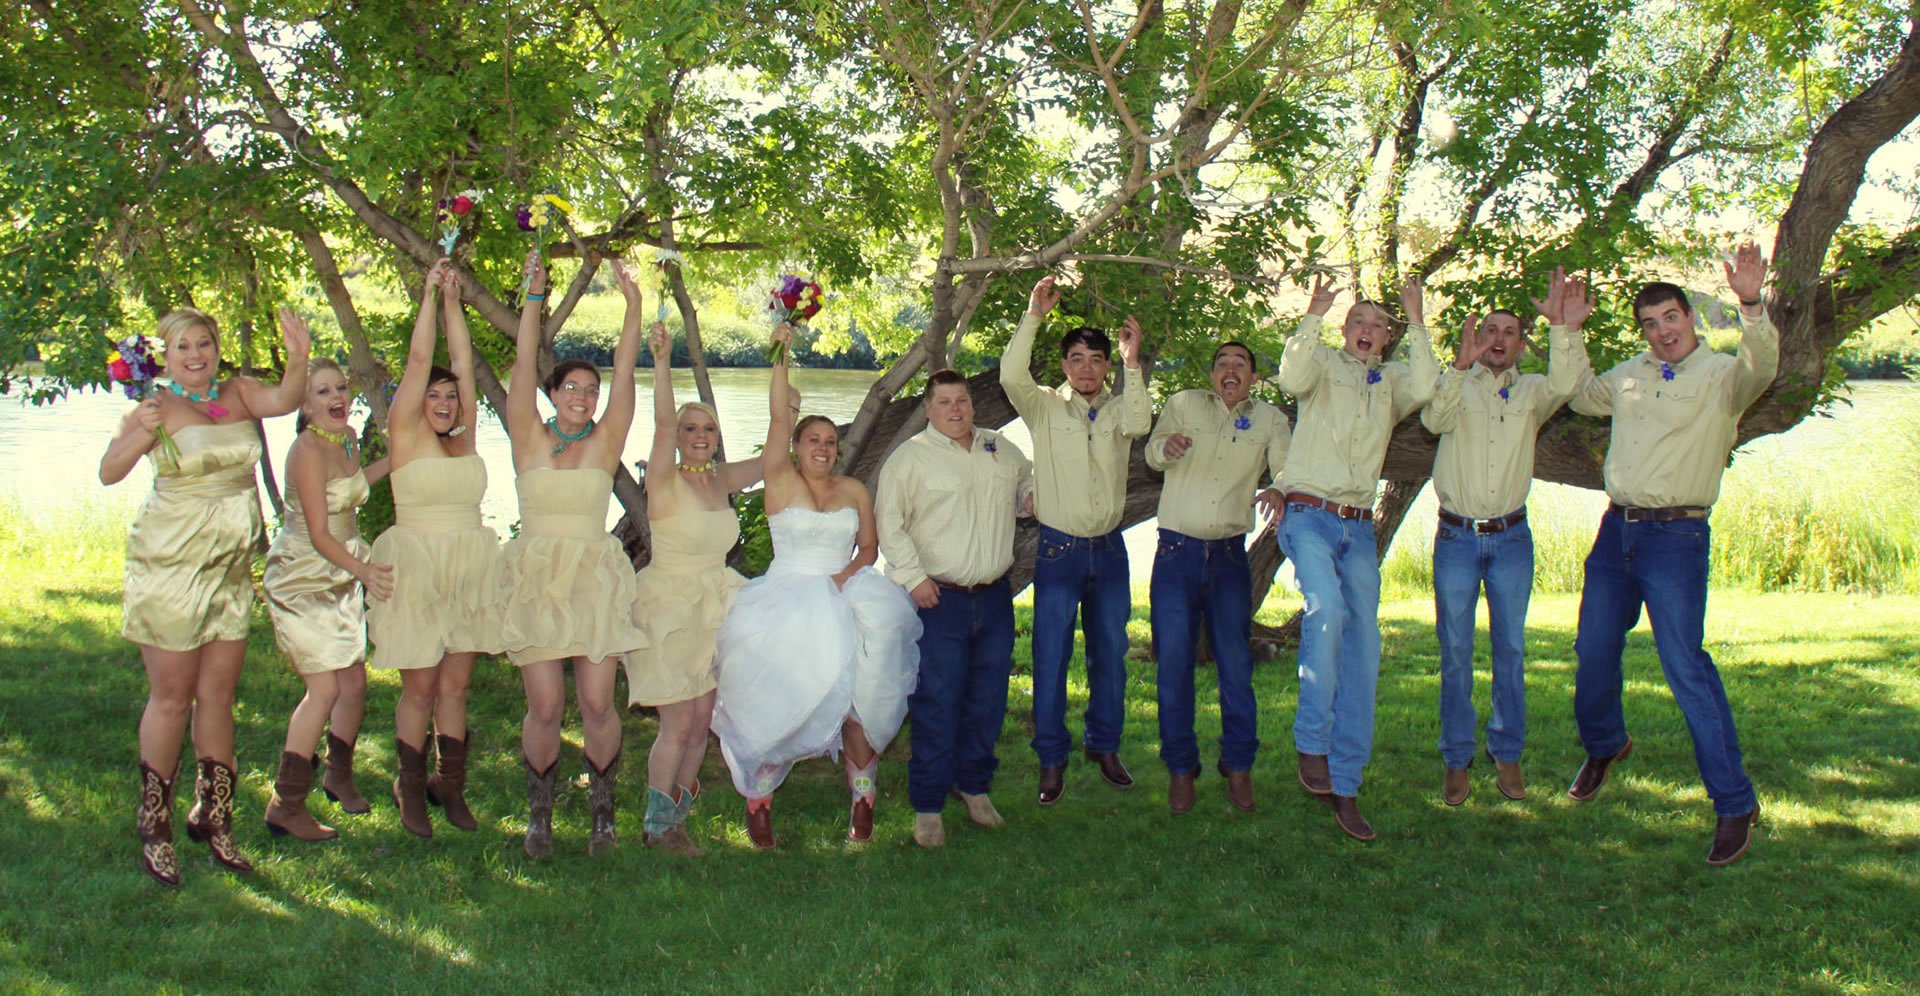 Outdoor Wedding Venue, Casper Wyoming